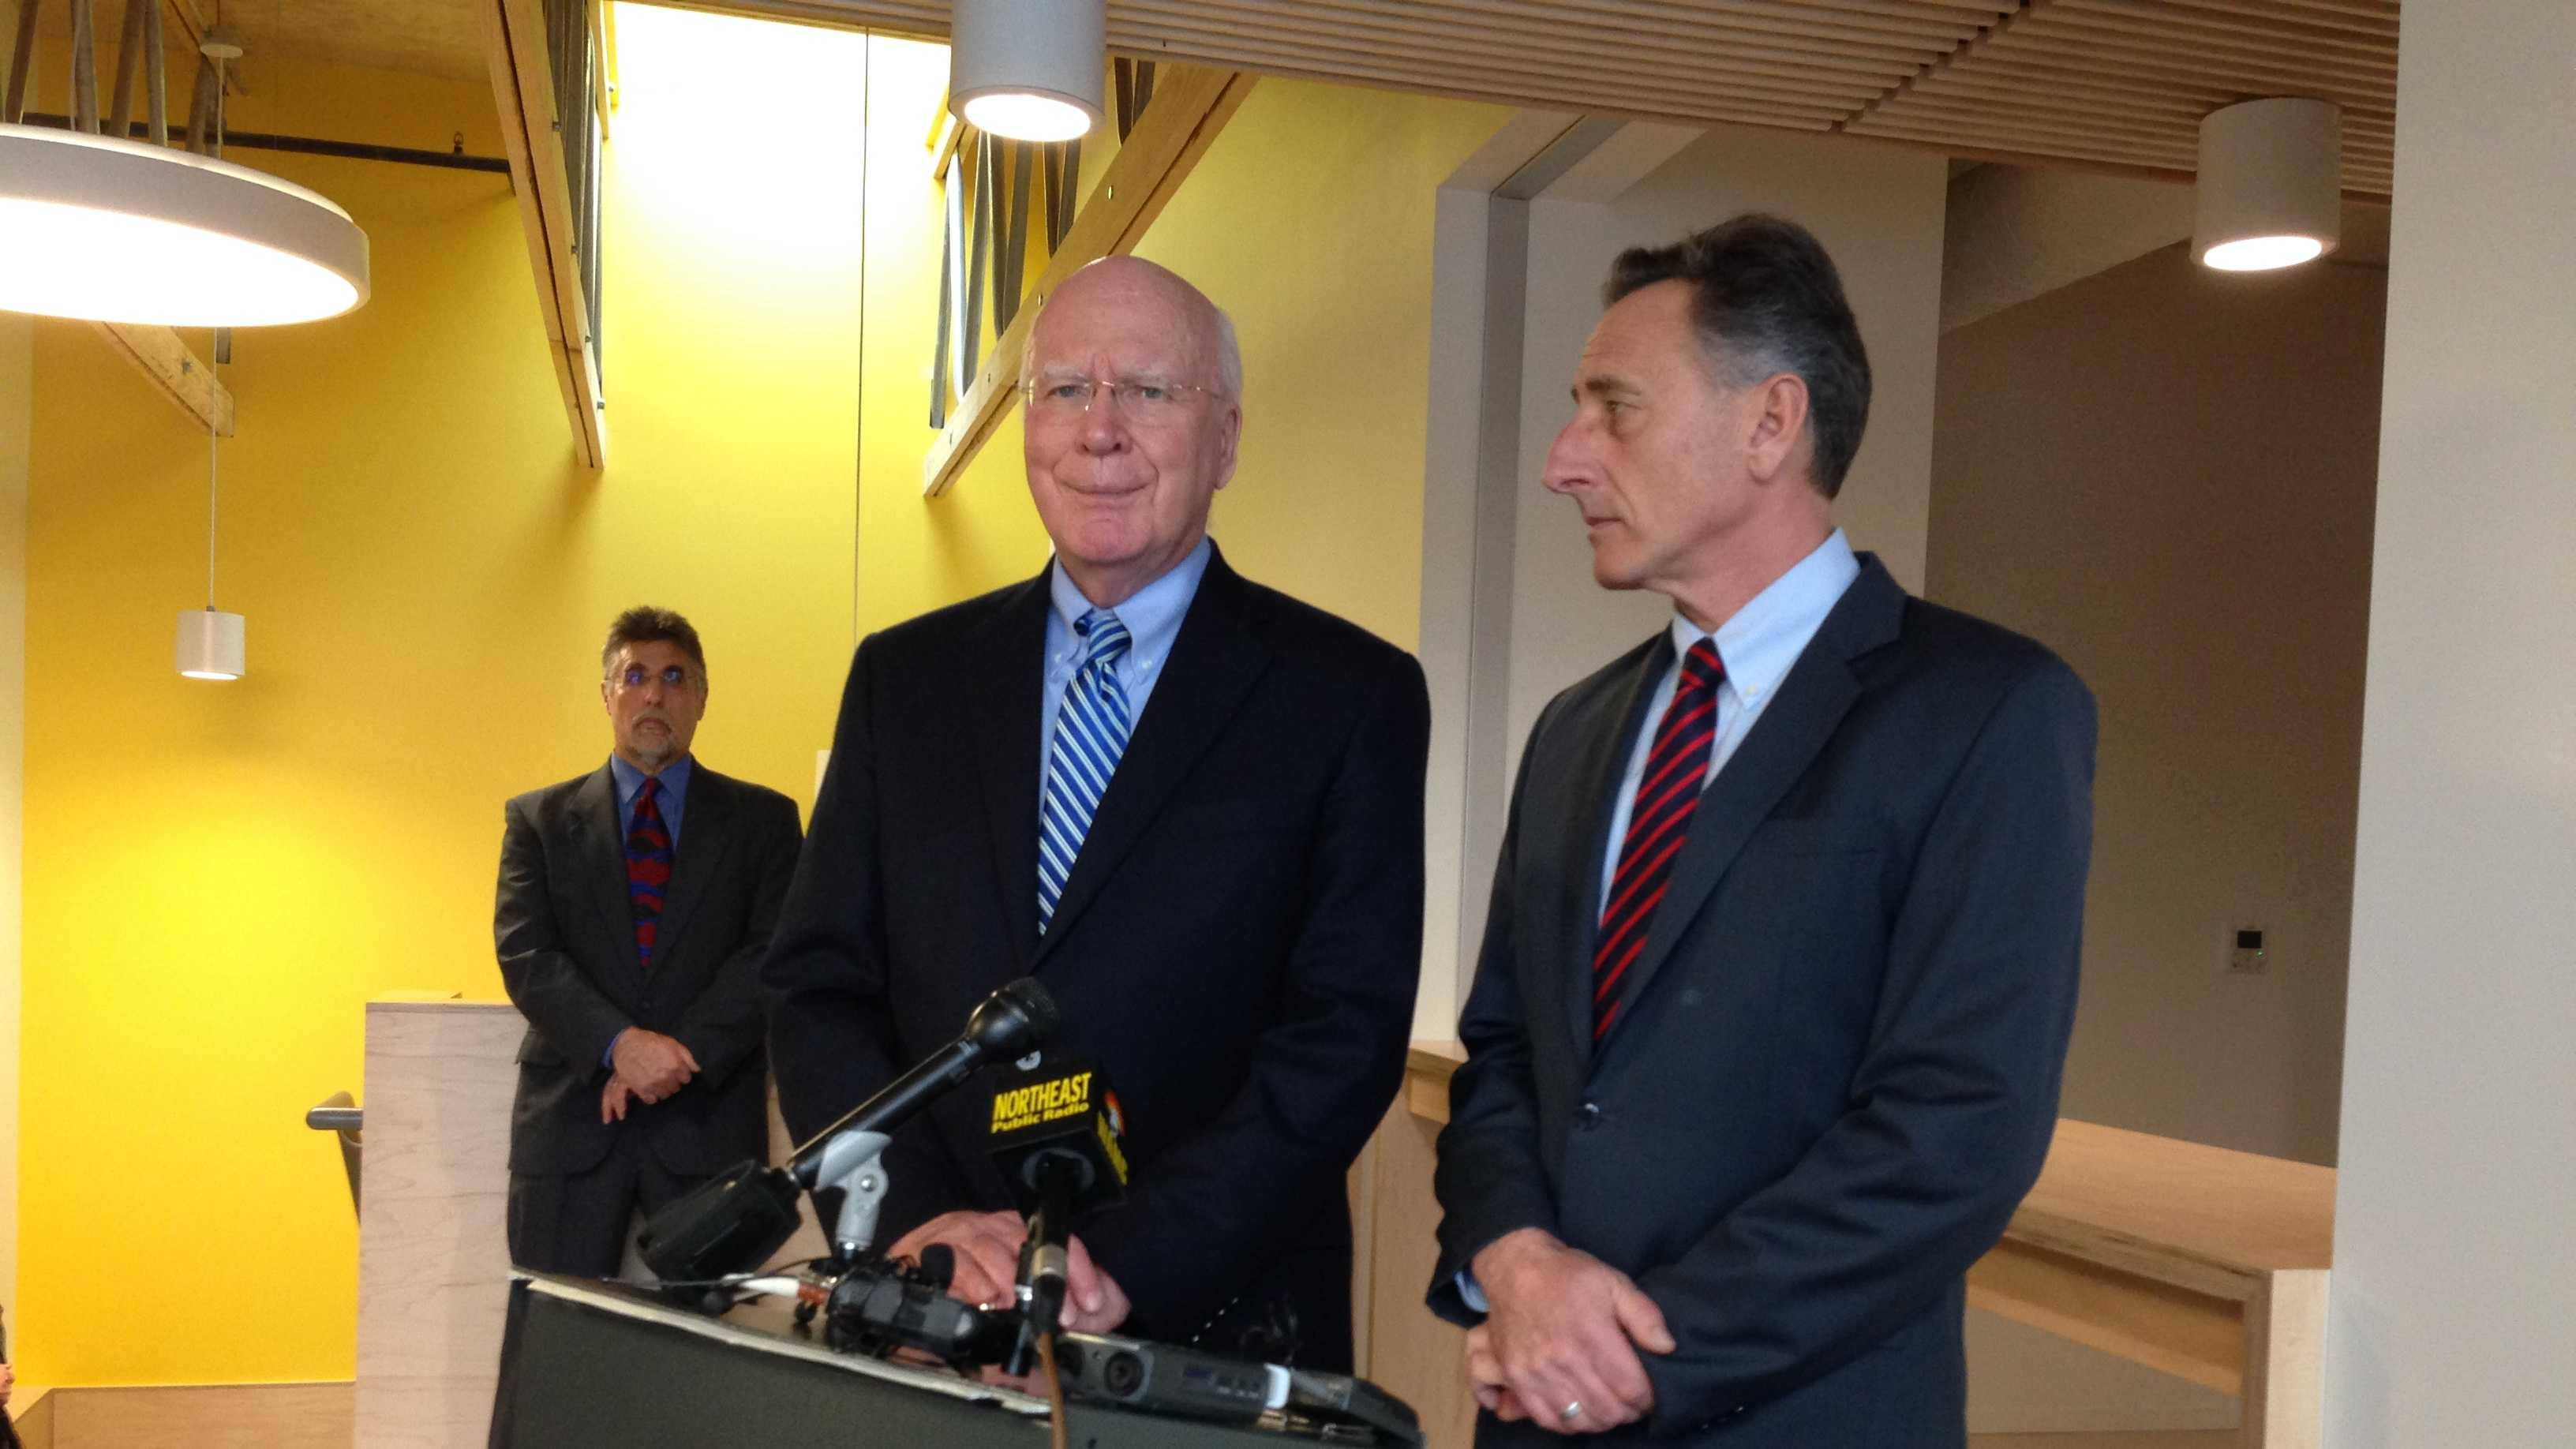 Sen. Patrick Leahy and Gov. Peter Shumlin address a press conference Monday in Barre.